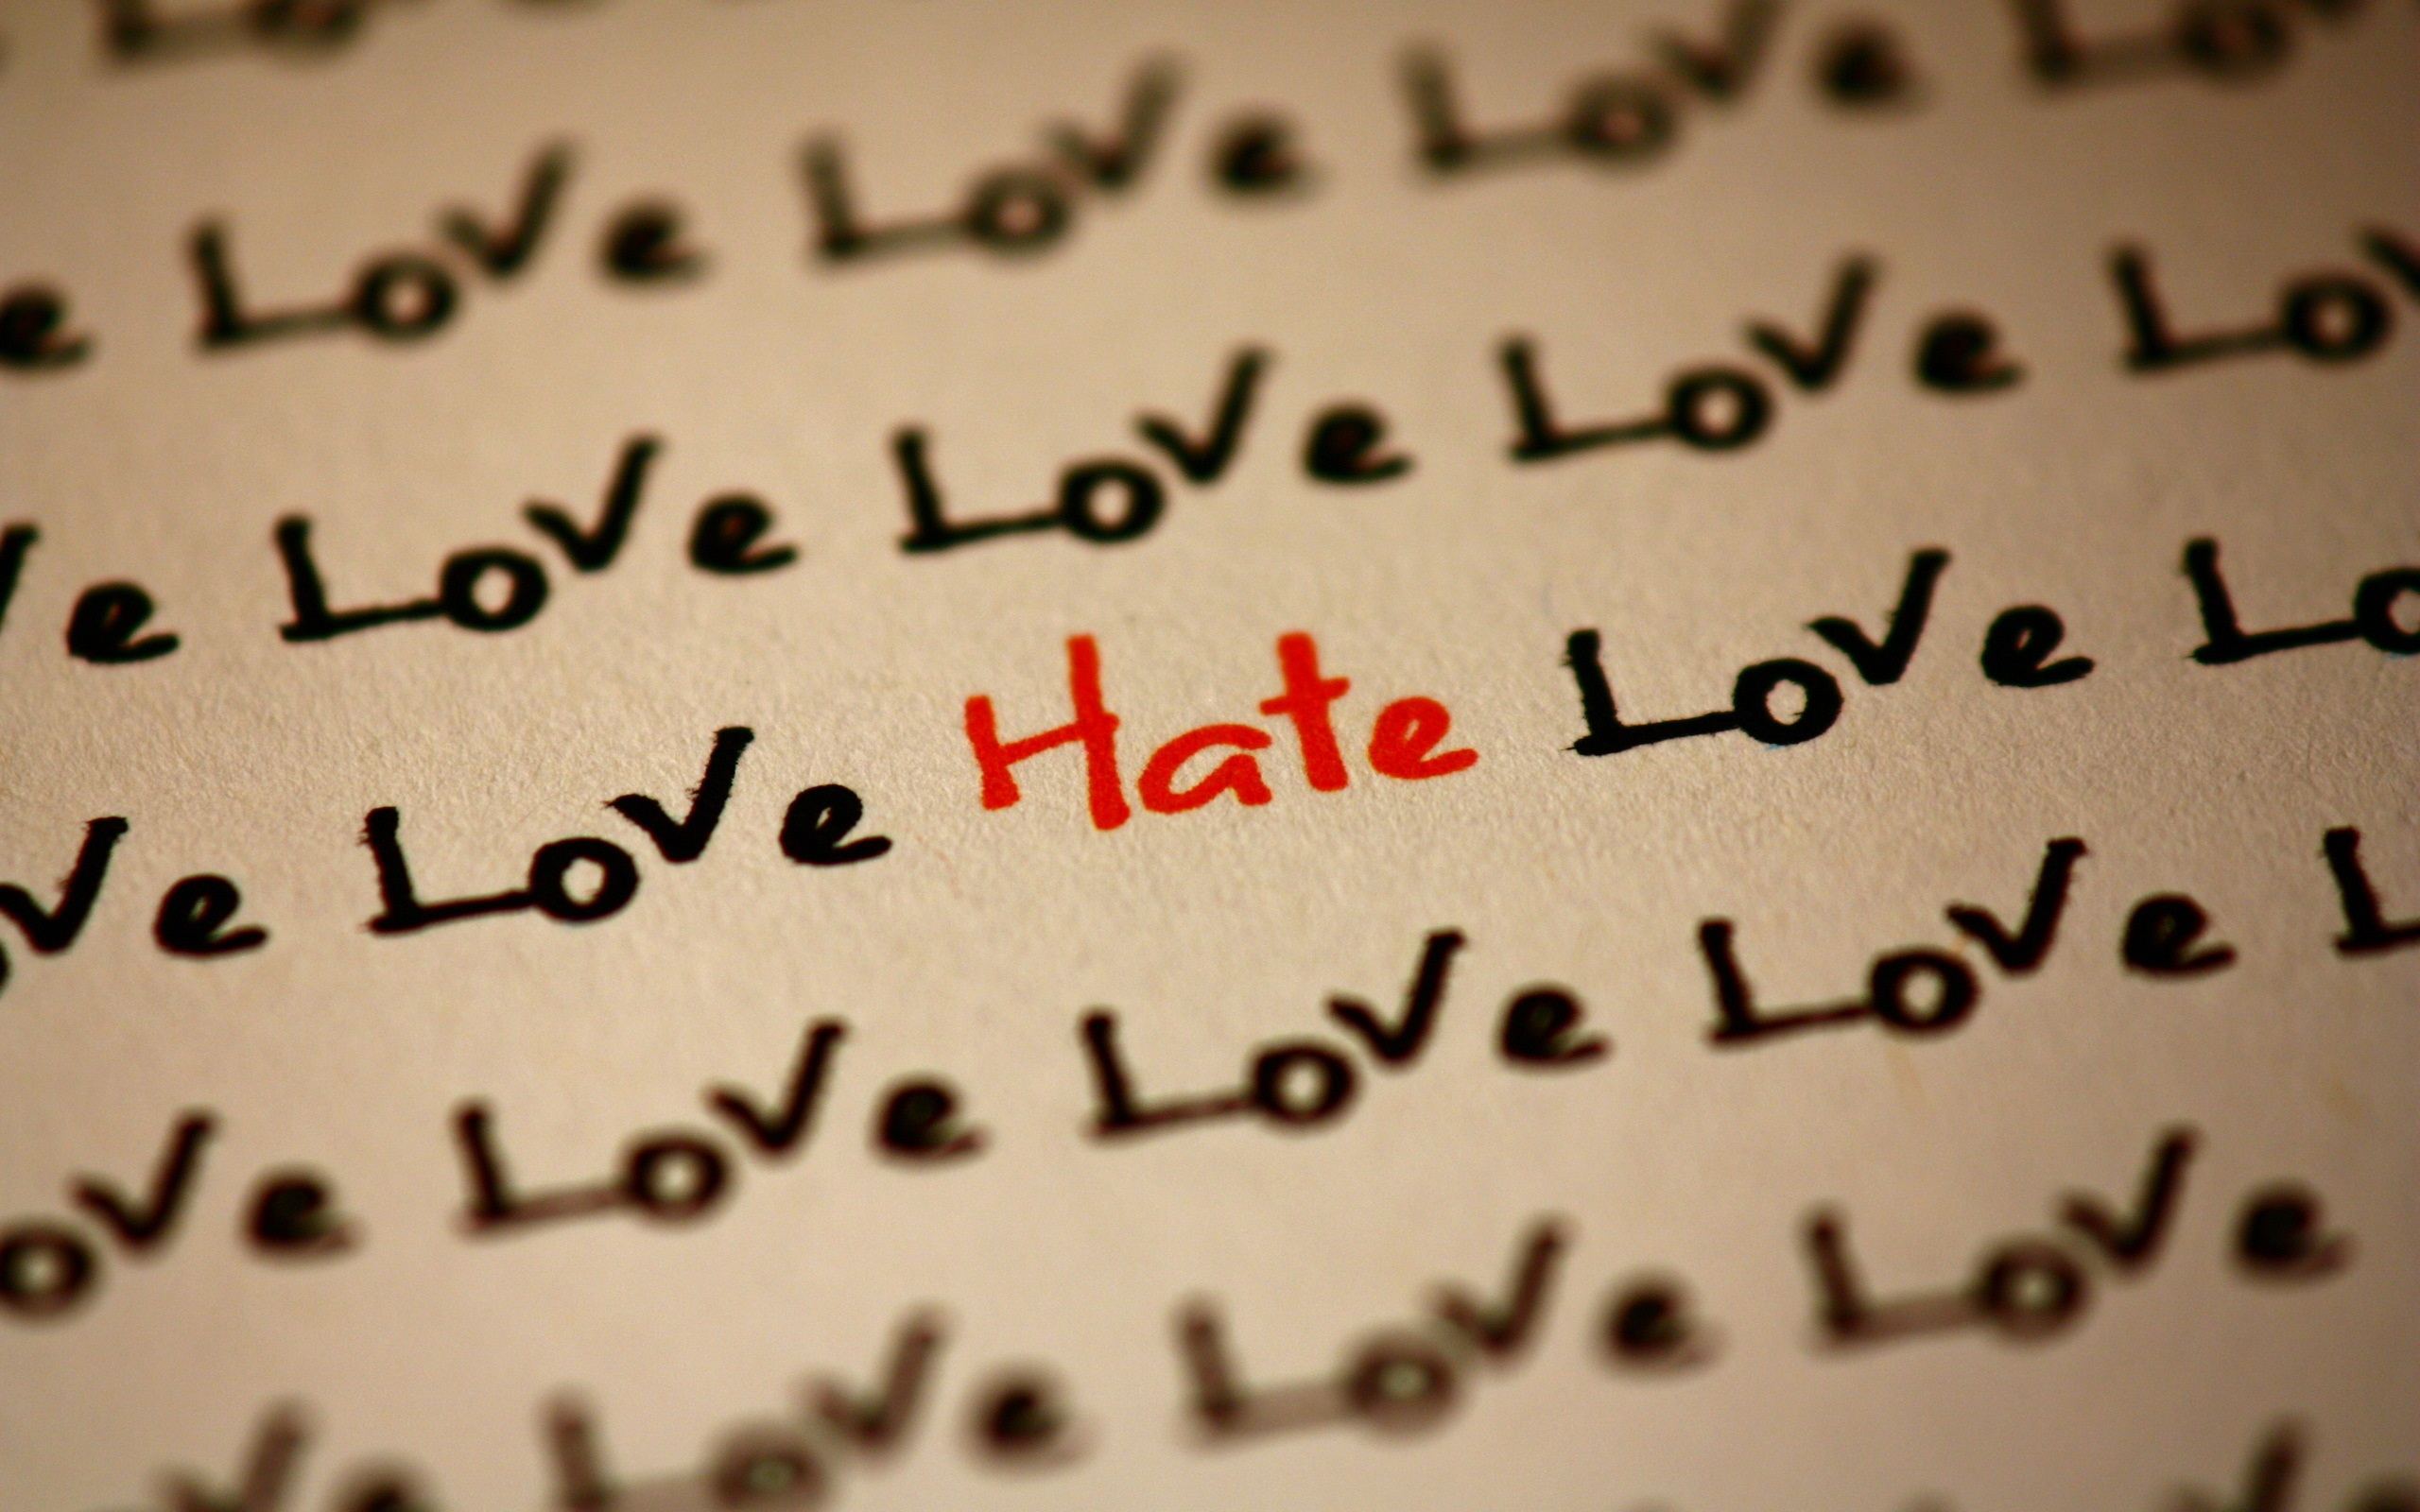 Wallpaper Many Love And Only Hate 2560x1600 Hd Picture Image